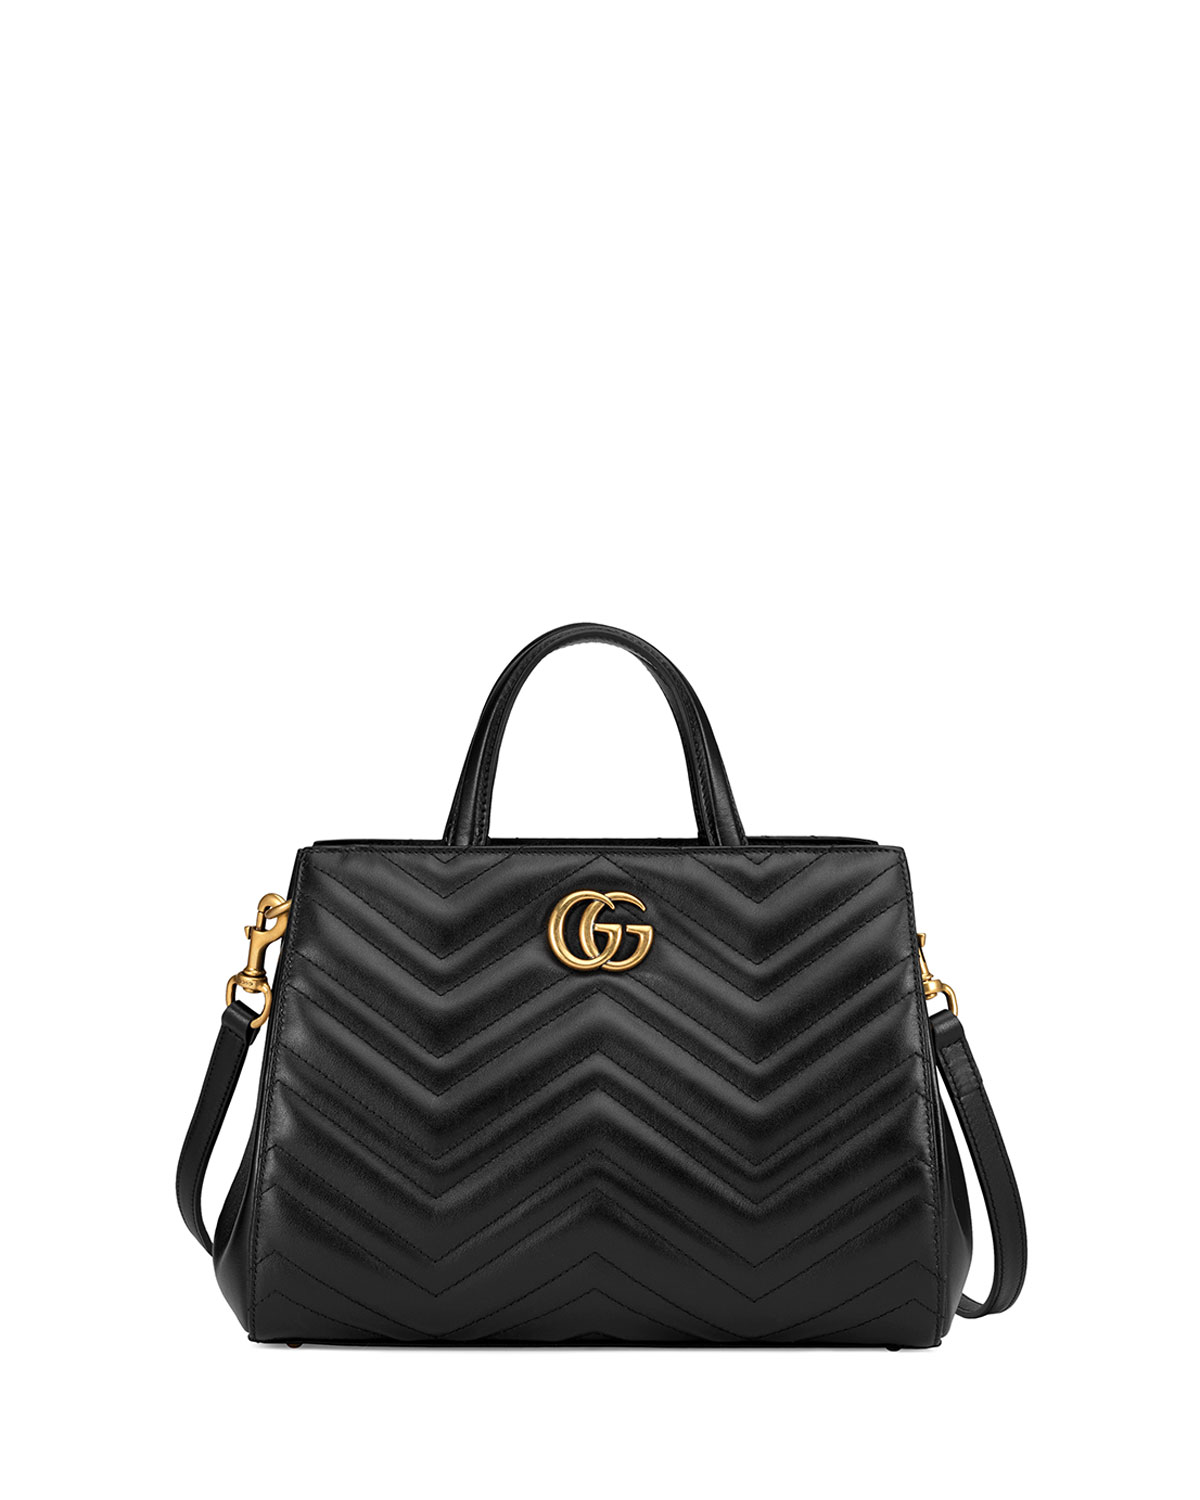 127b20a05ca Gucci GG Marmont Small Matelassé Top-Handle Bag